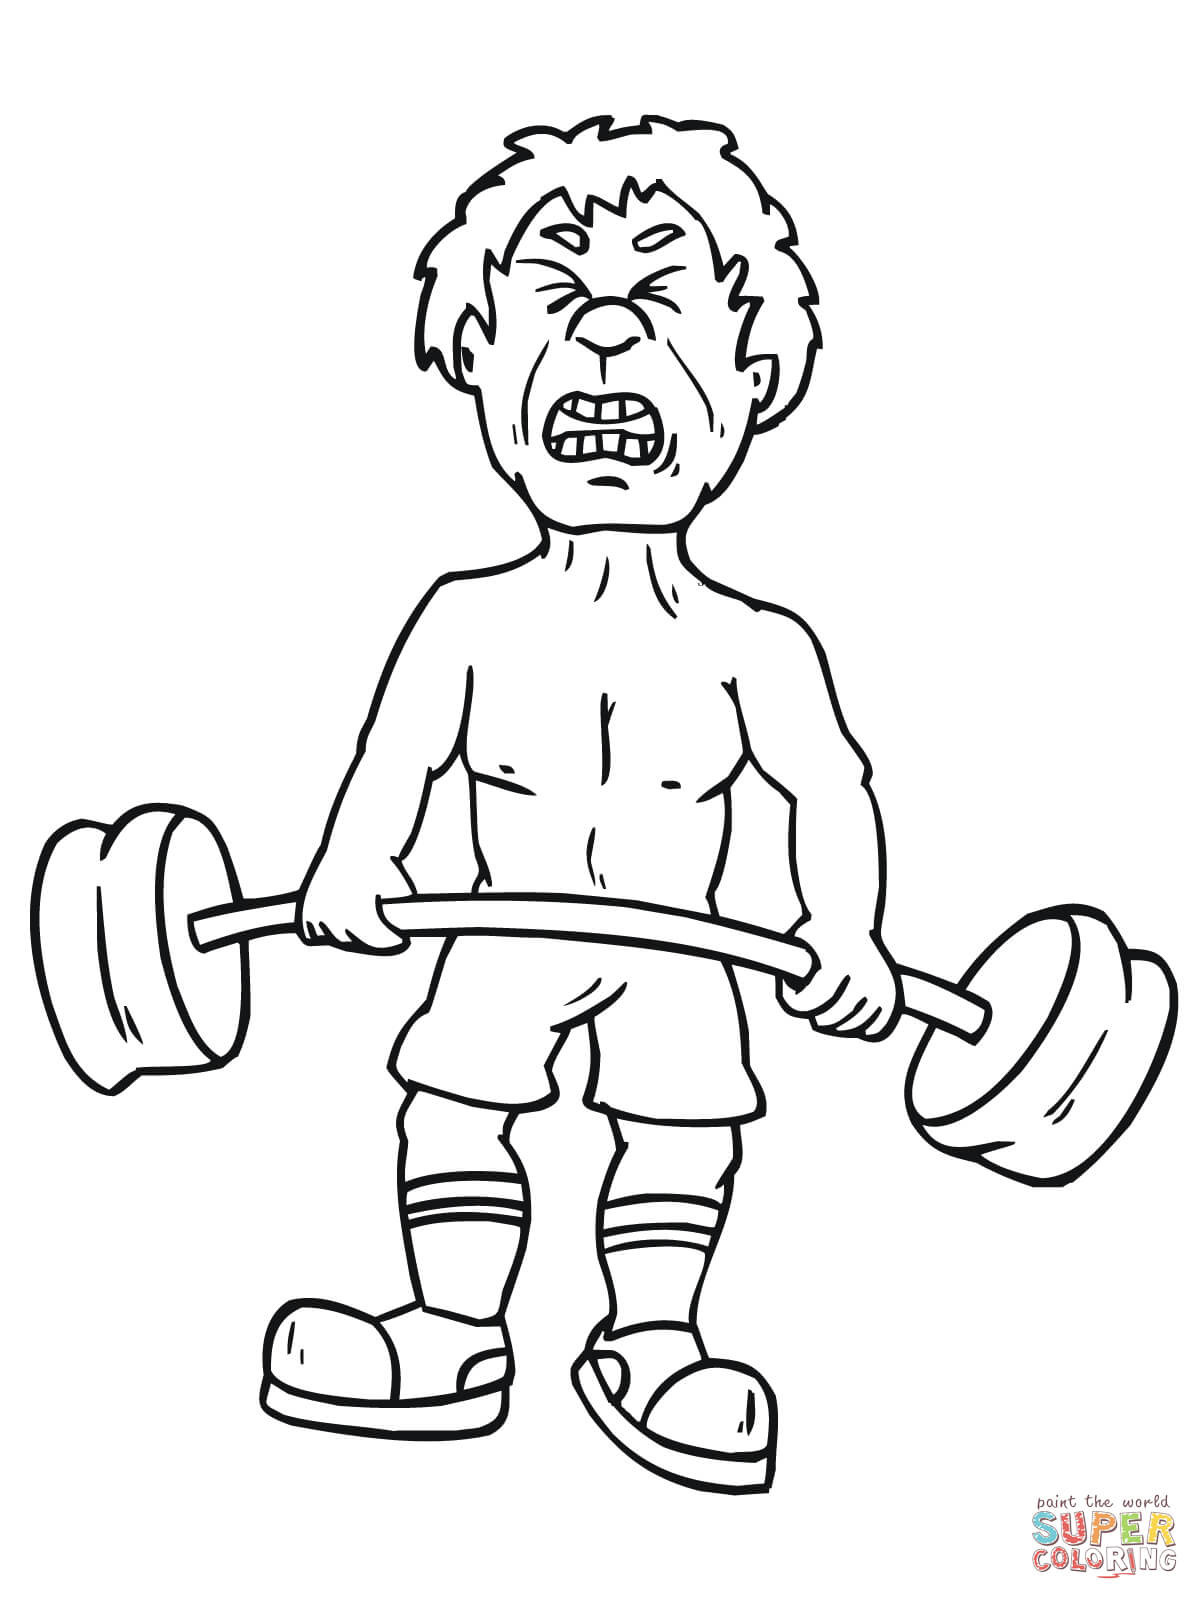 exercise coloring pages 10 printable pictures of fitness page print color craft exercise coloring pages